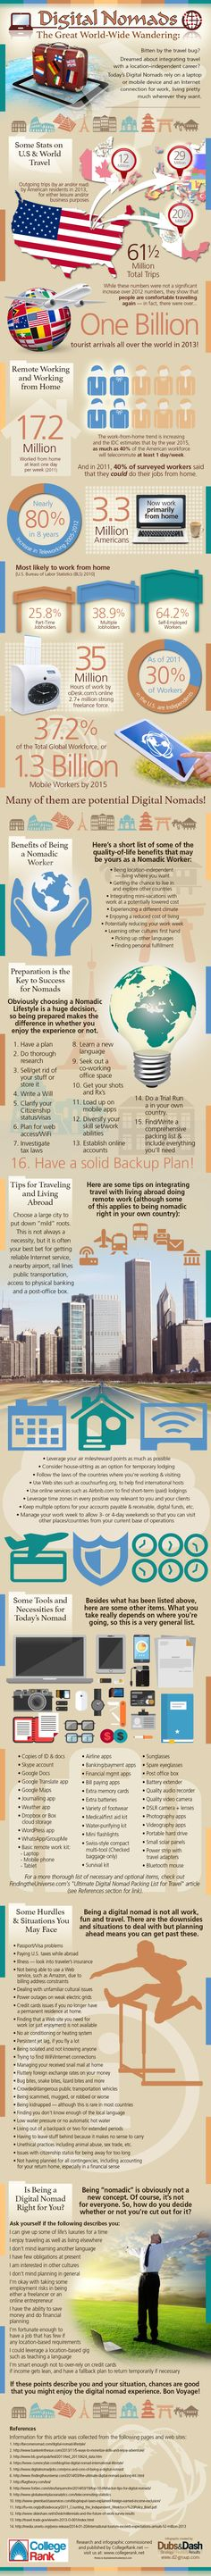 Digital Nomads: The Great World-Wide Wandering Infographic #digitalnomads #digitalnomadedu